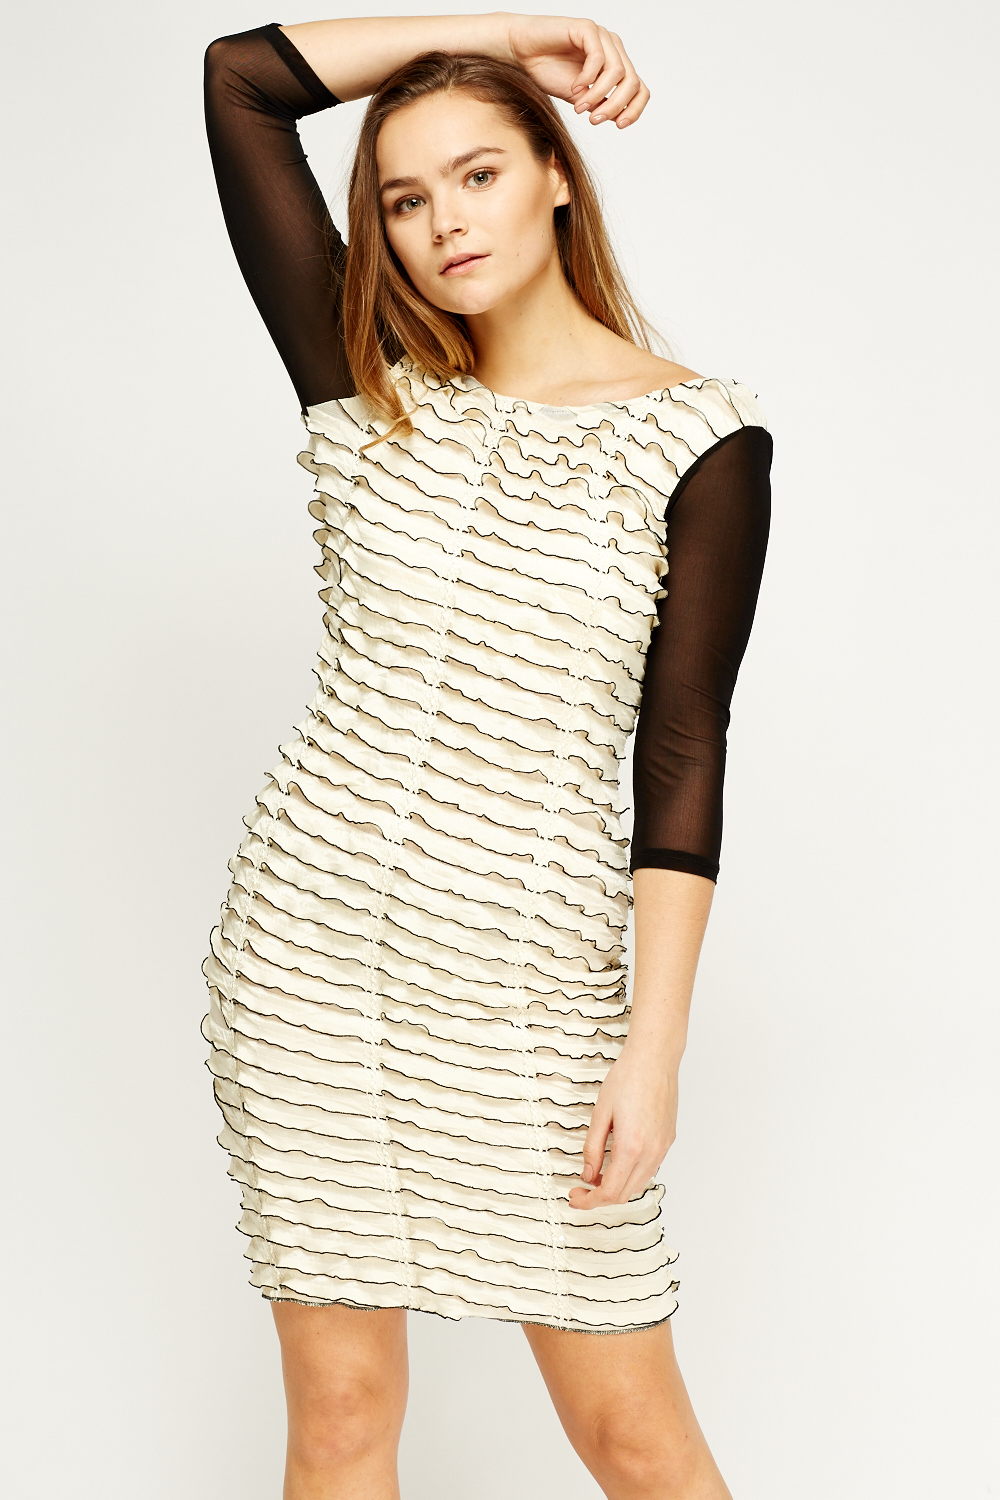 Ruffled Mesh Sleeve Dress - Cream/Black or Red/Black - Just £5